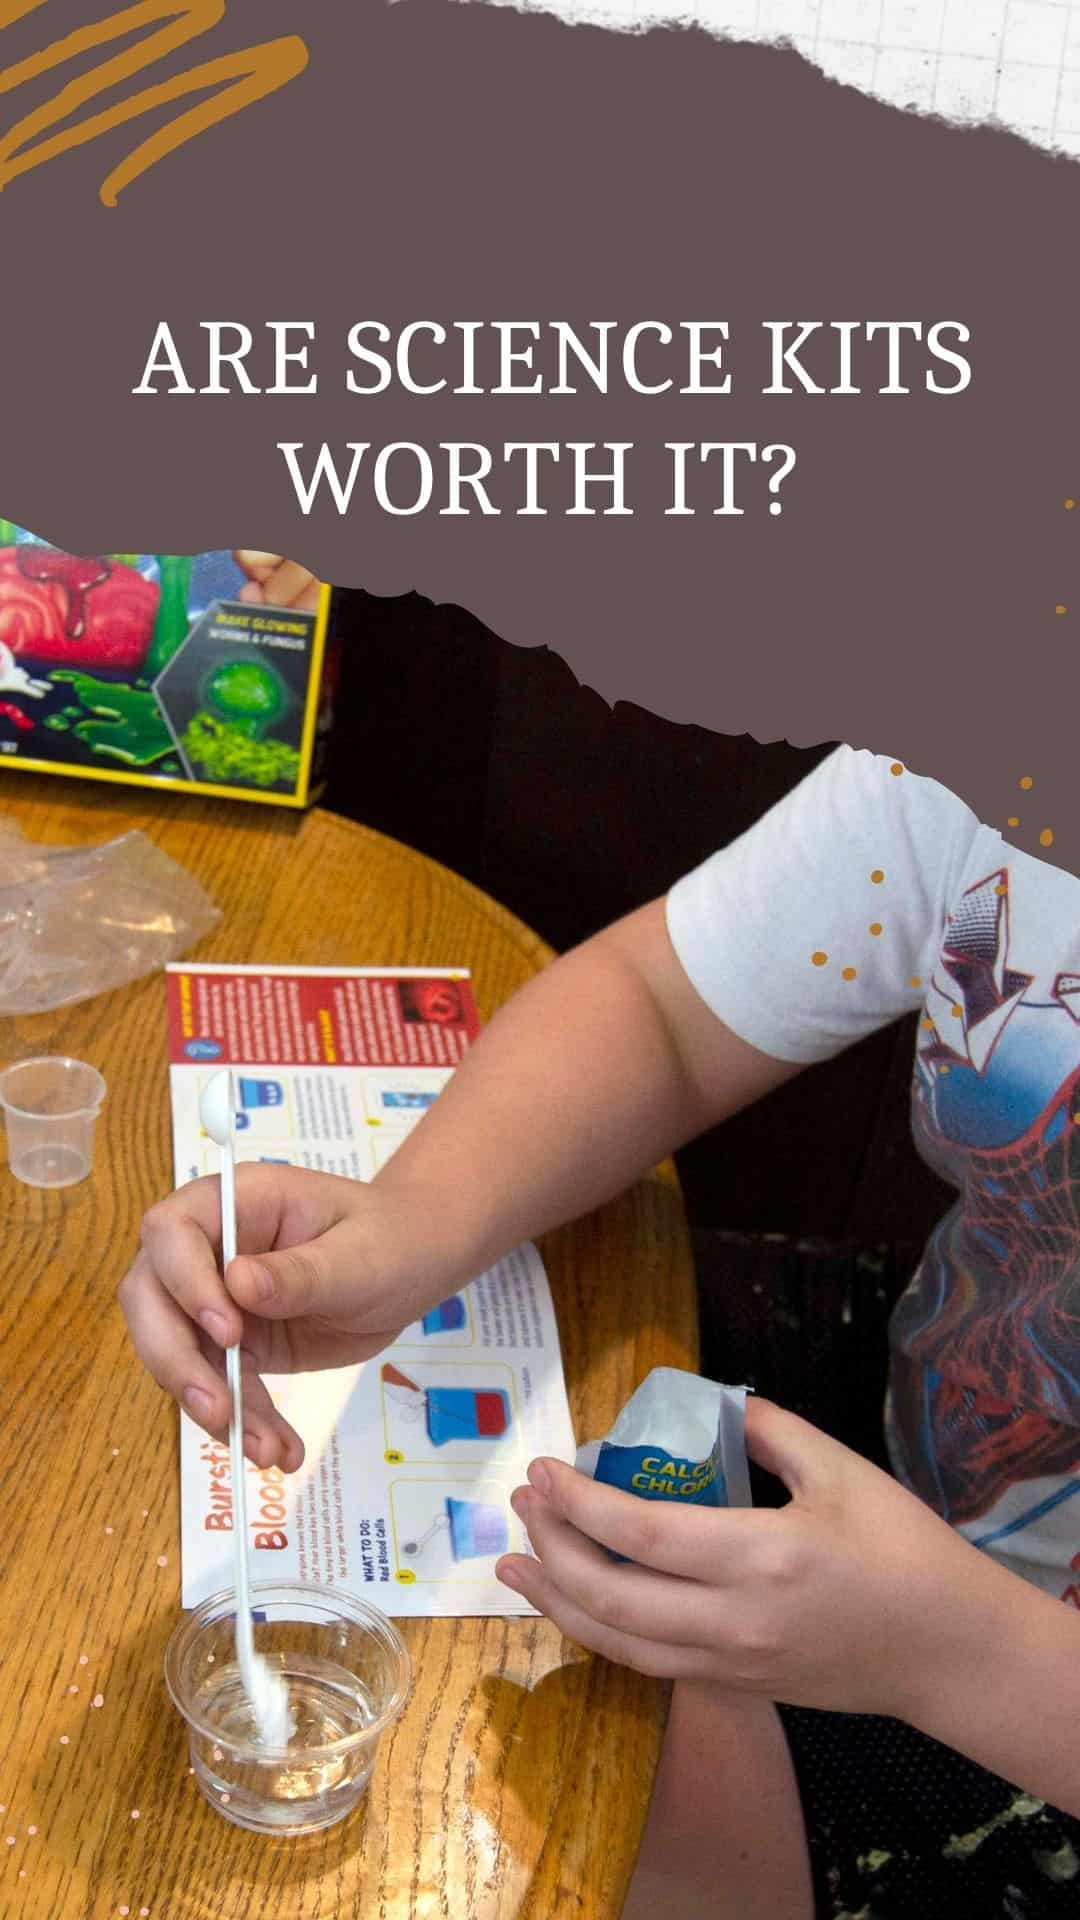 Are science kits worth the price? Find the science kits that are worht the money and the ones that are not.